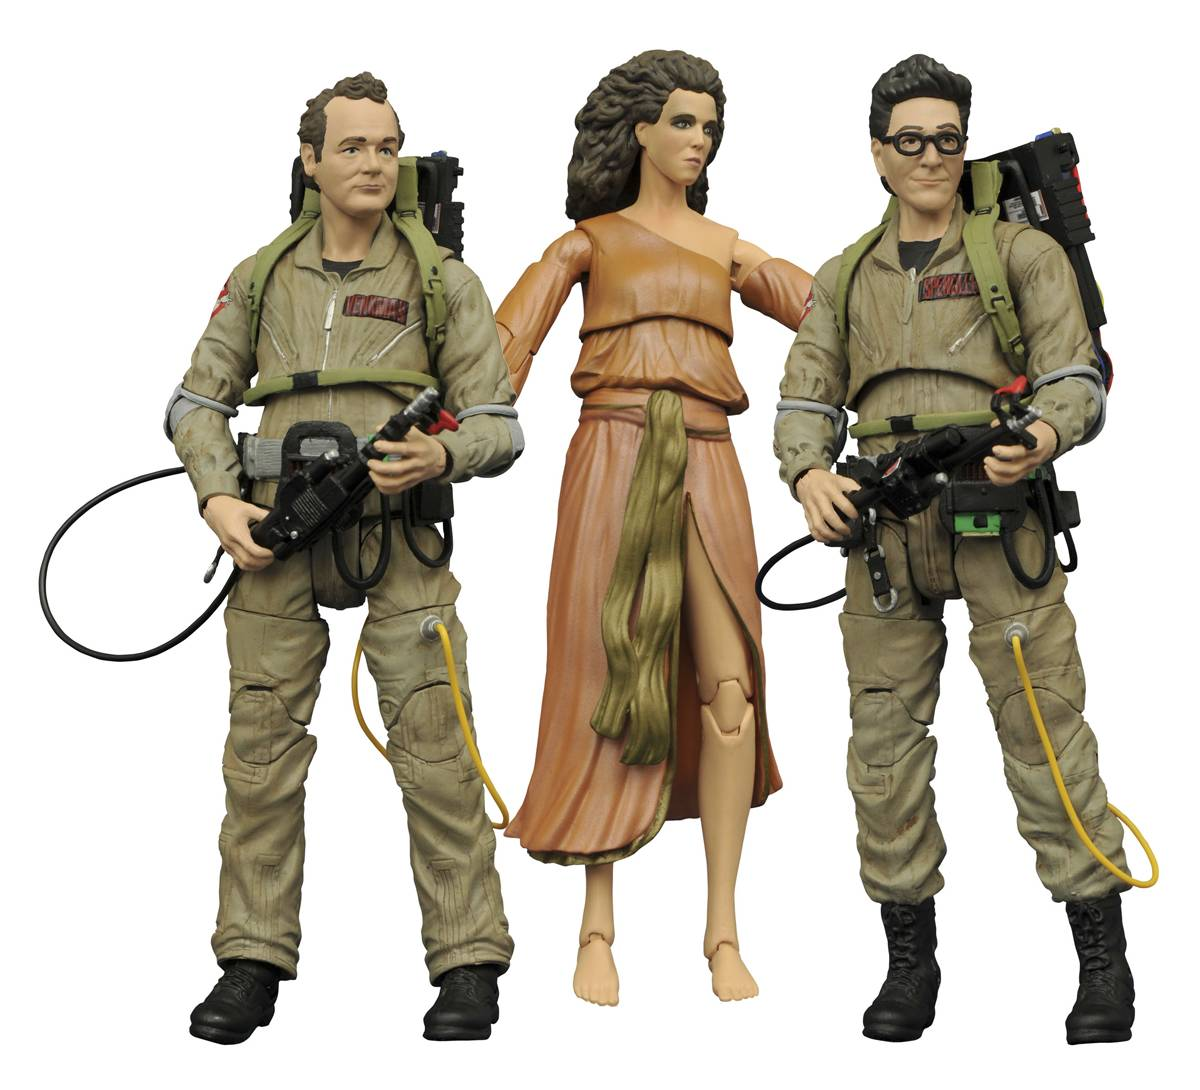 Ghostbusters Action Figures 2